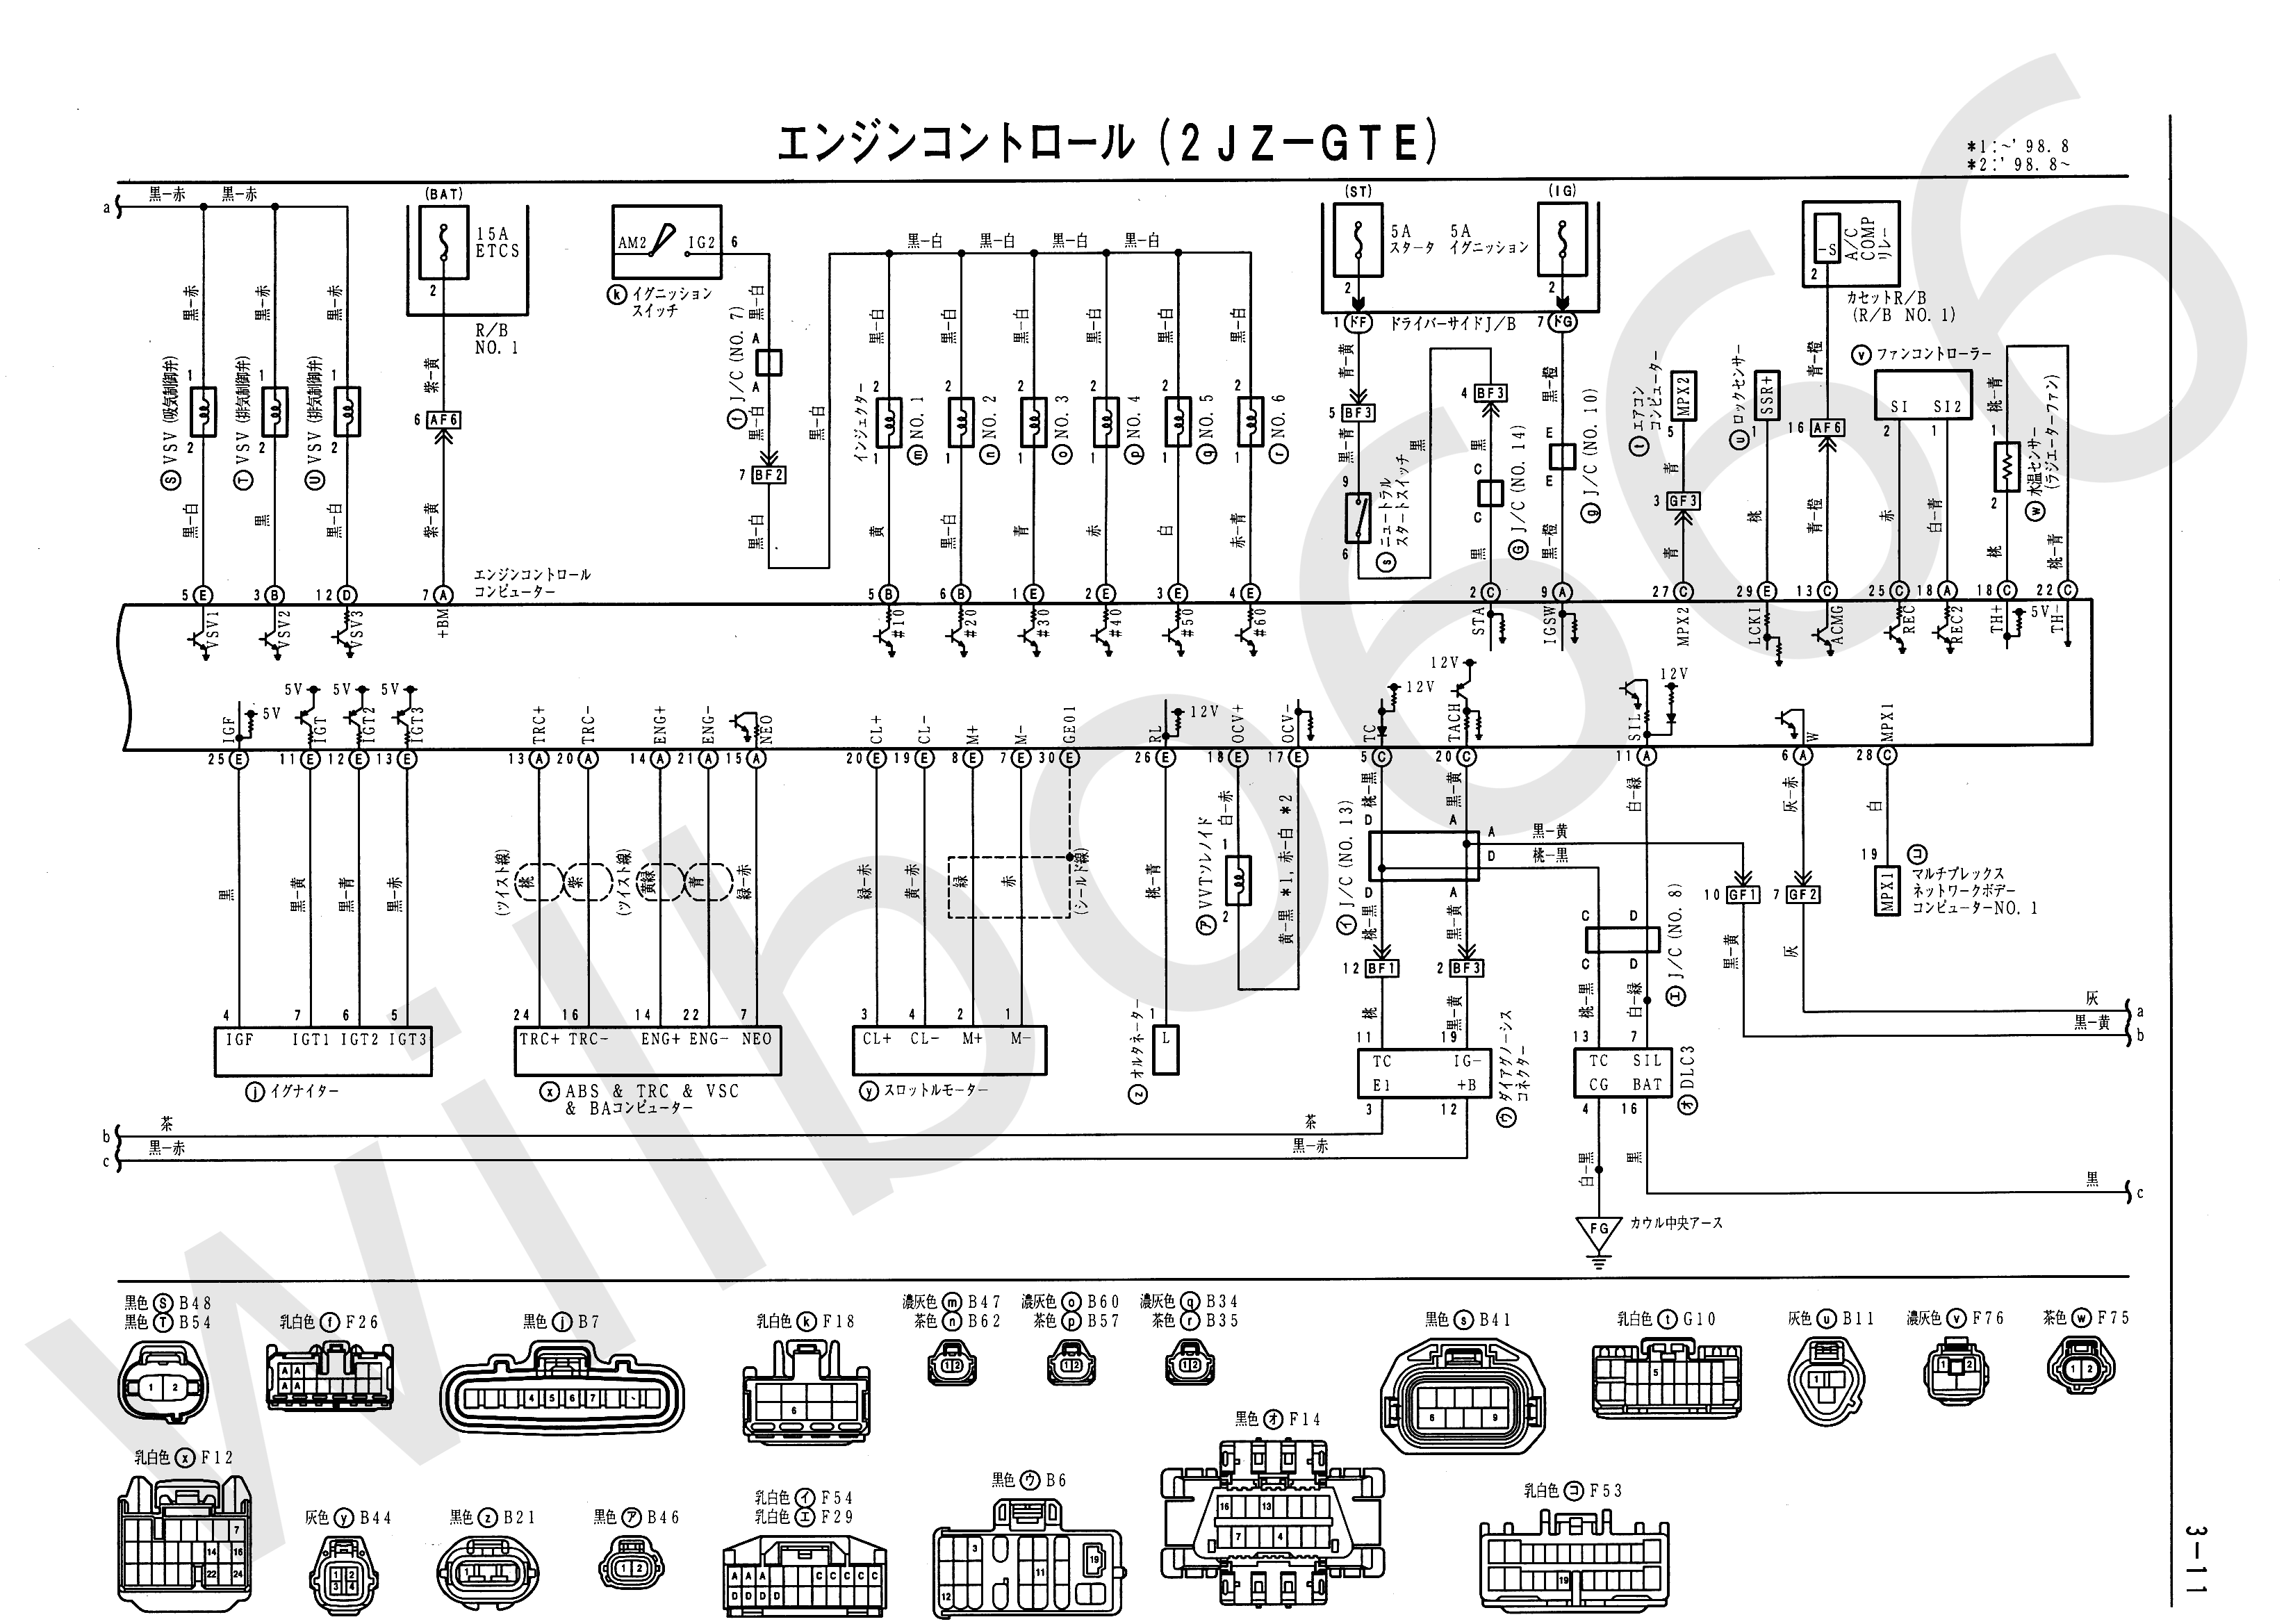 JZS161 Electrical Wiring Diagram 6748505 3 11 1jz wiring diagram 1jz gte ecu pinout \u2022 wiring diagrams j squared co maxxima strobe lights wiring diagram at soozxer.org